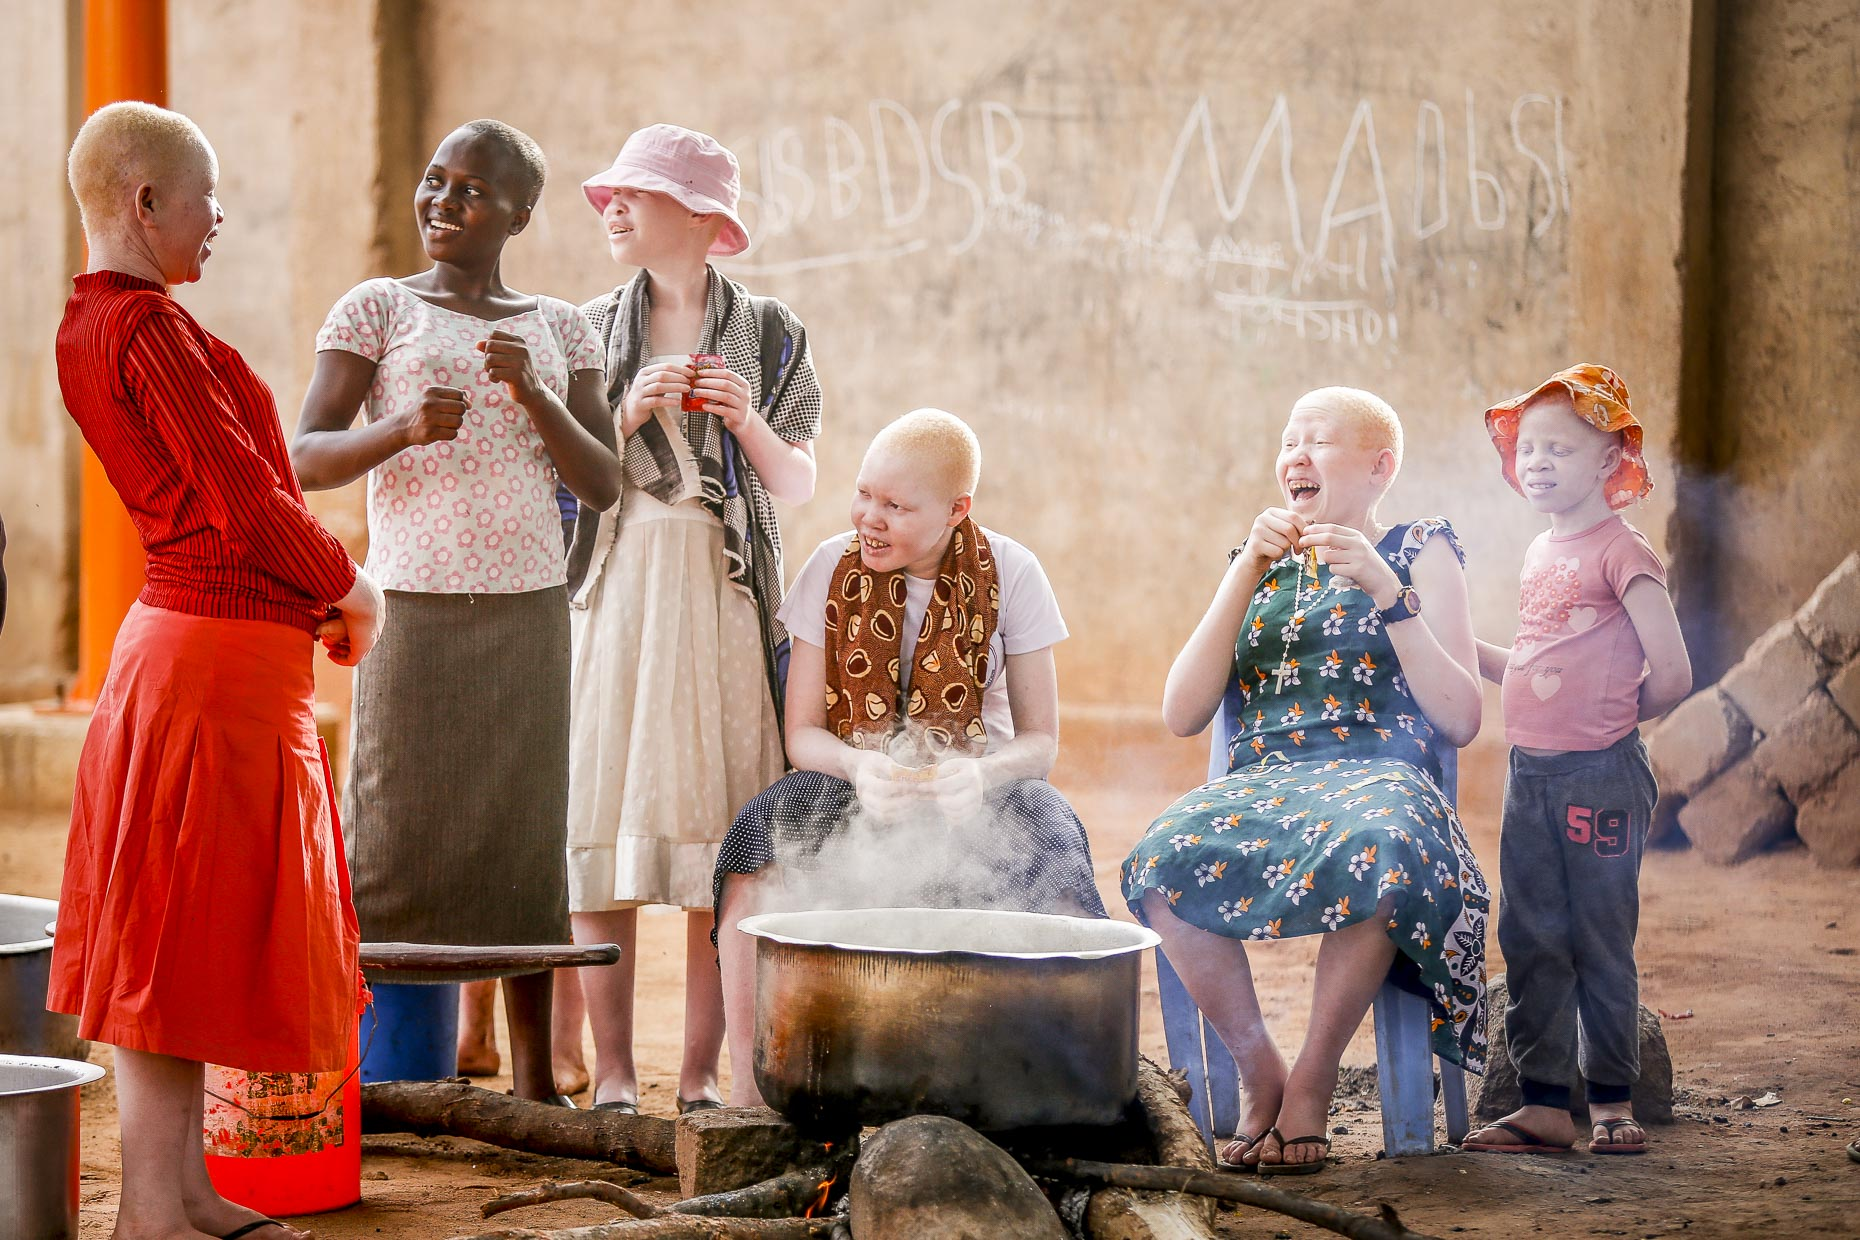 A group of childern laughing together gathered around an outdoor kitchen in an orphanage in East Africa